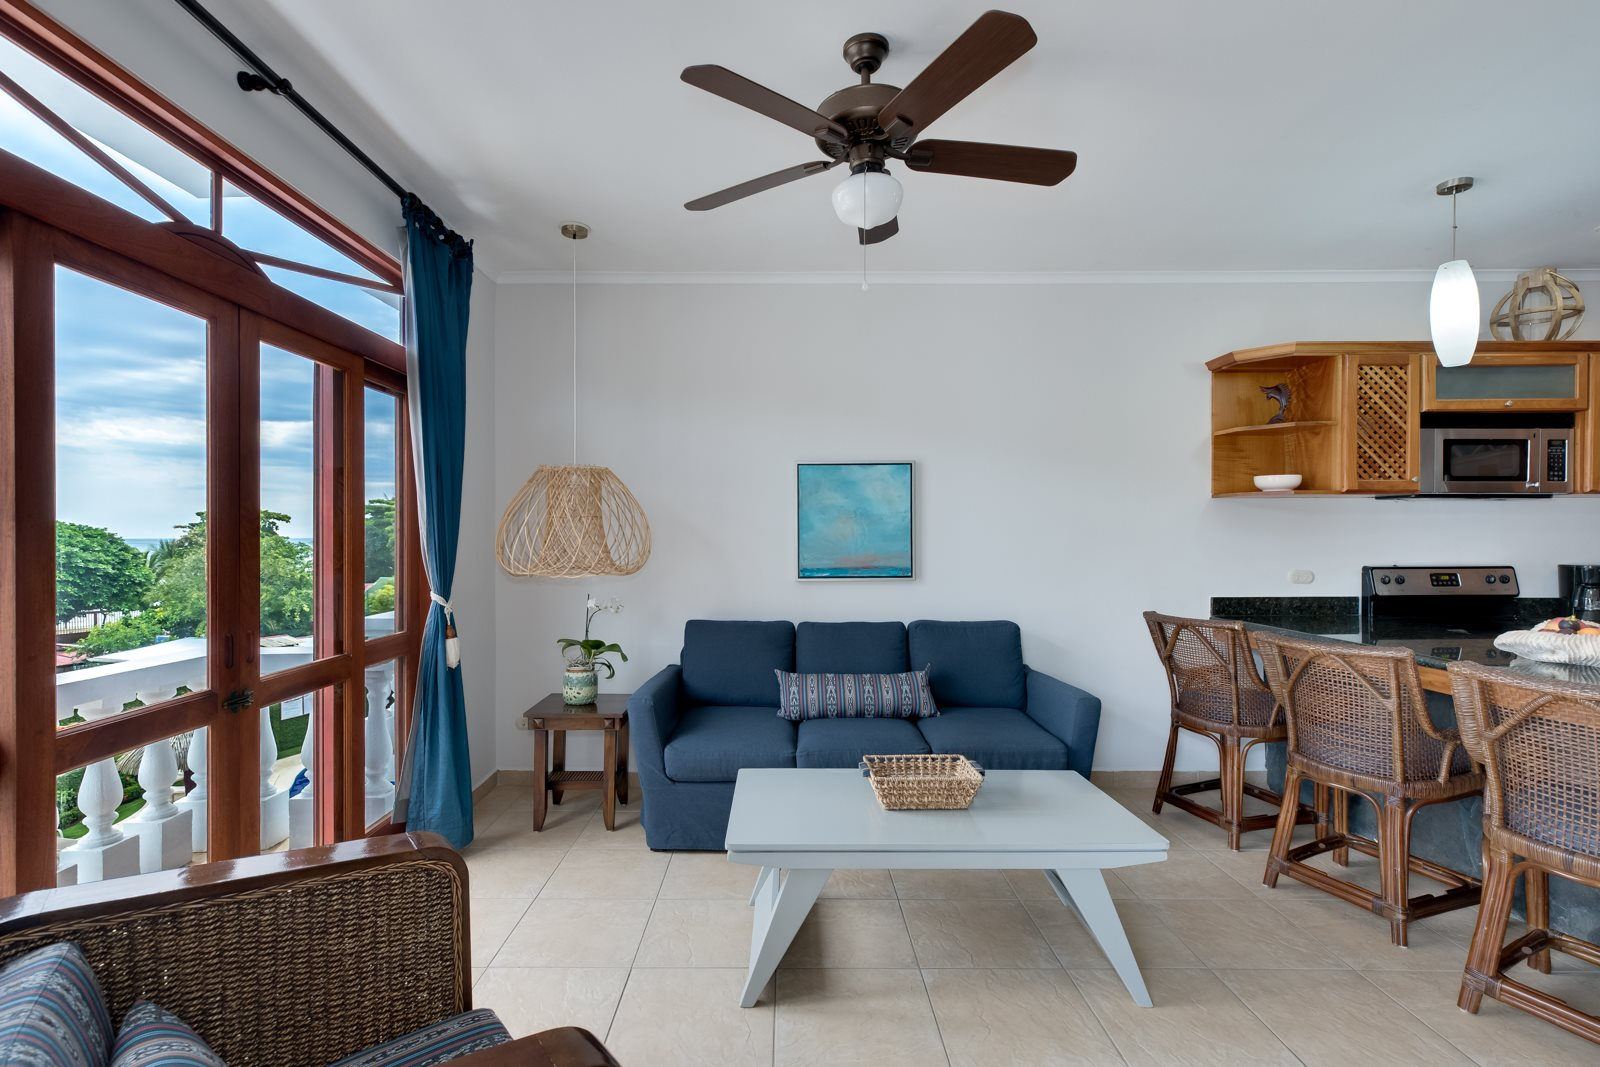 2 Bedroom 2 bathroom Ocean View Condo- Great Location on South End of Jaco Beach- Paloma Blanca